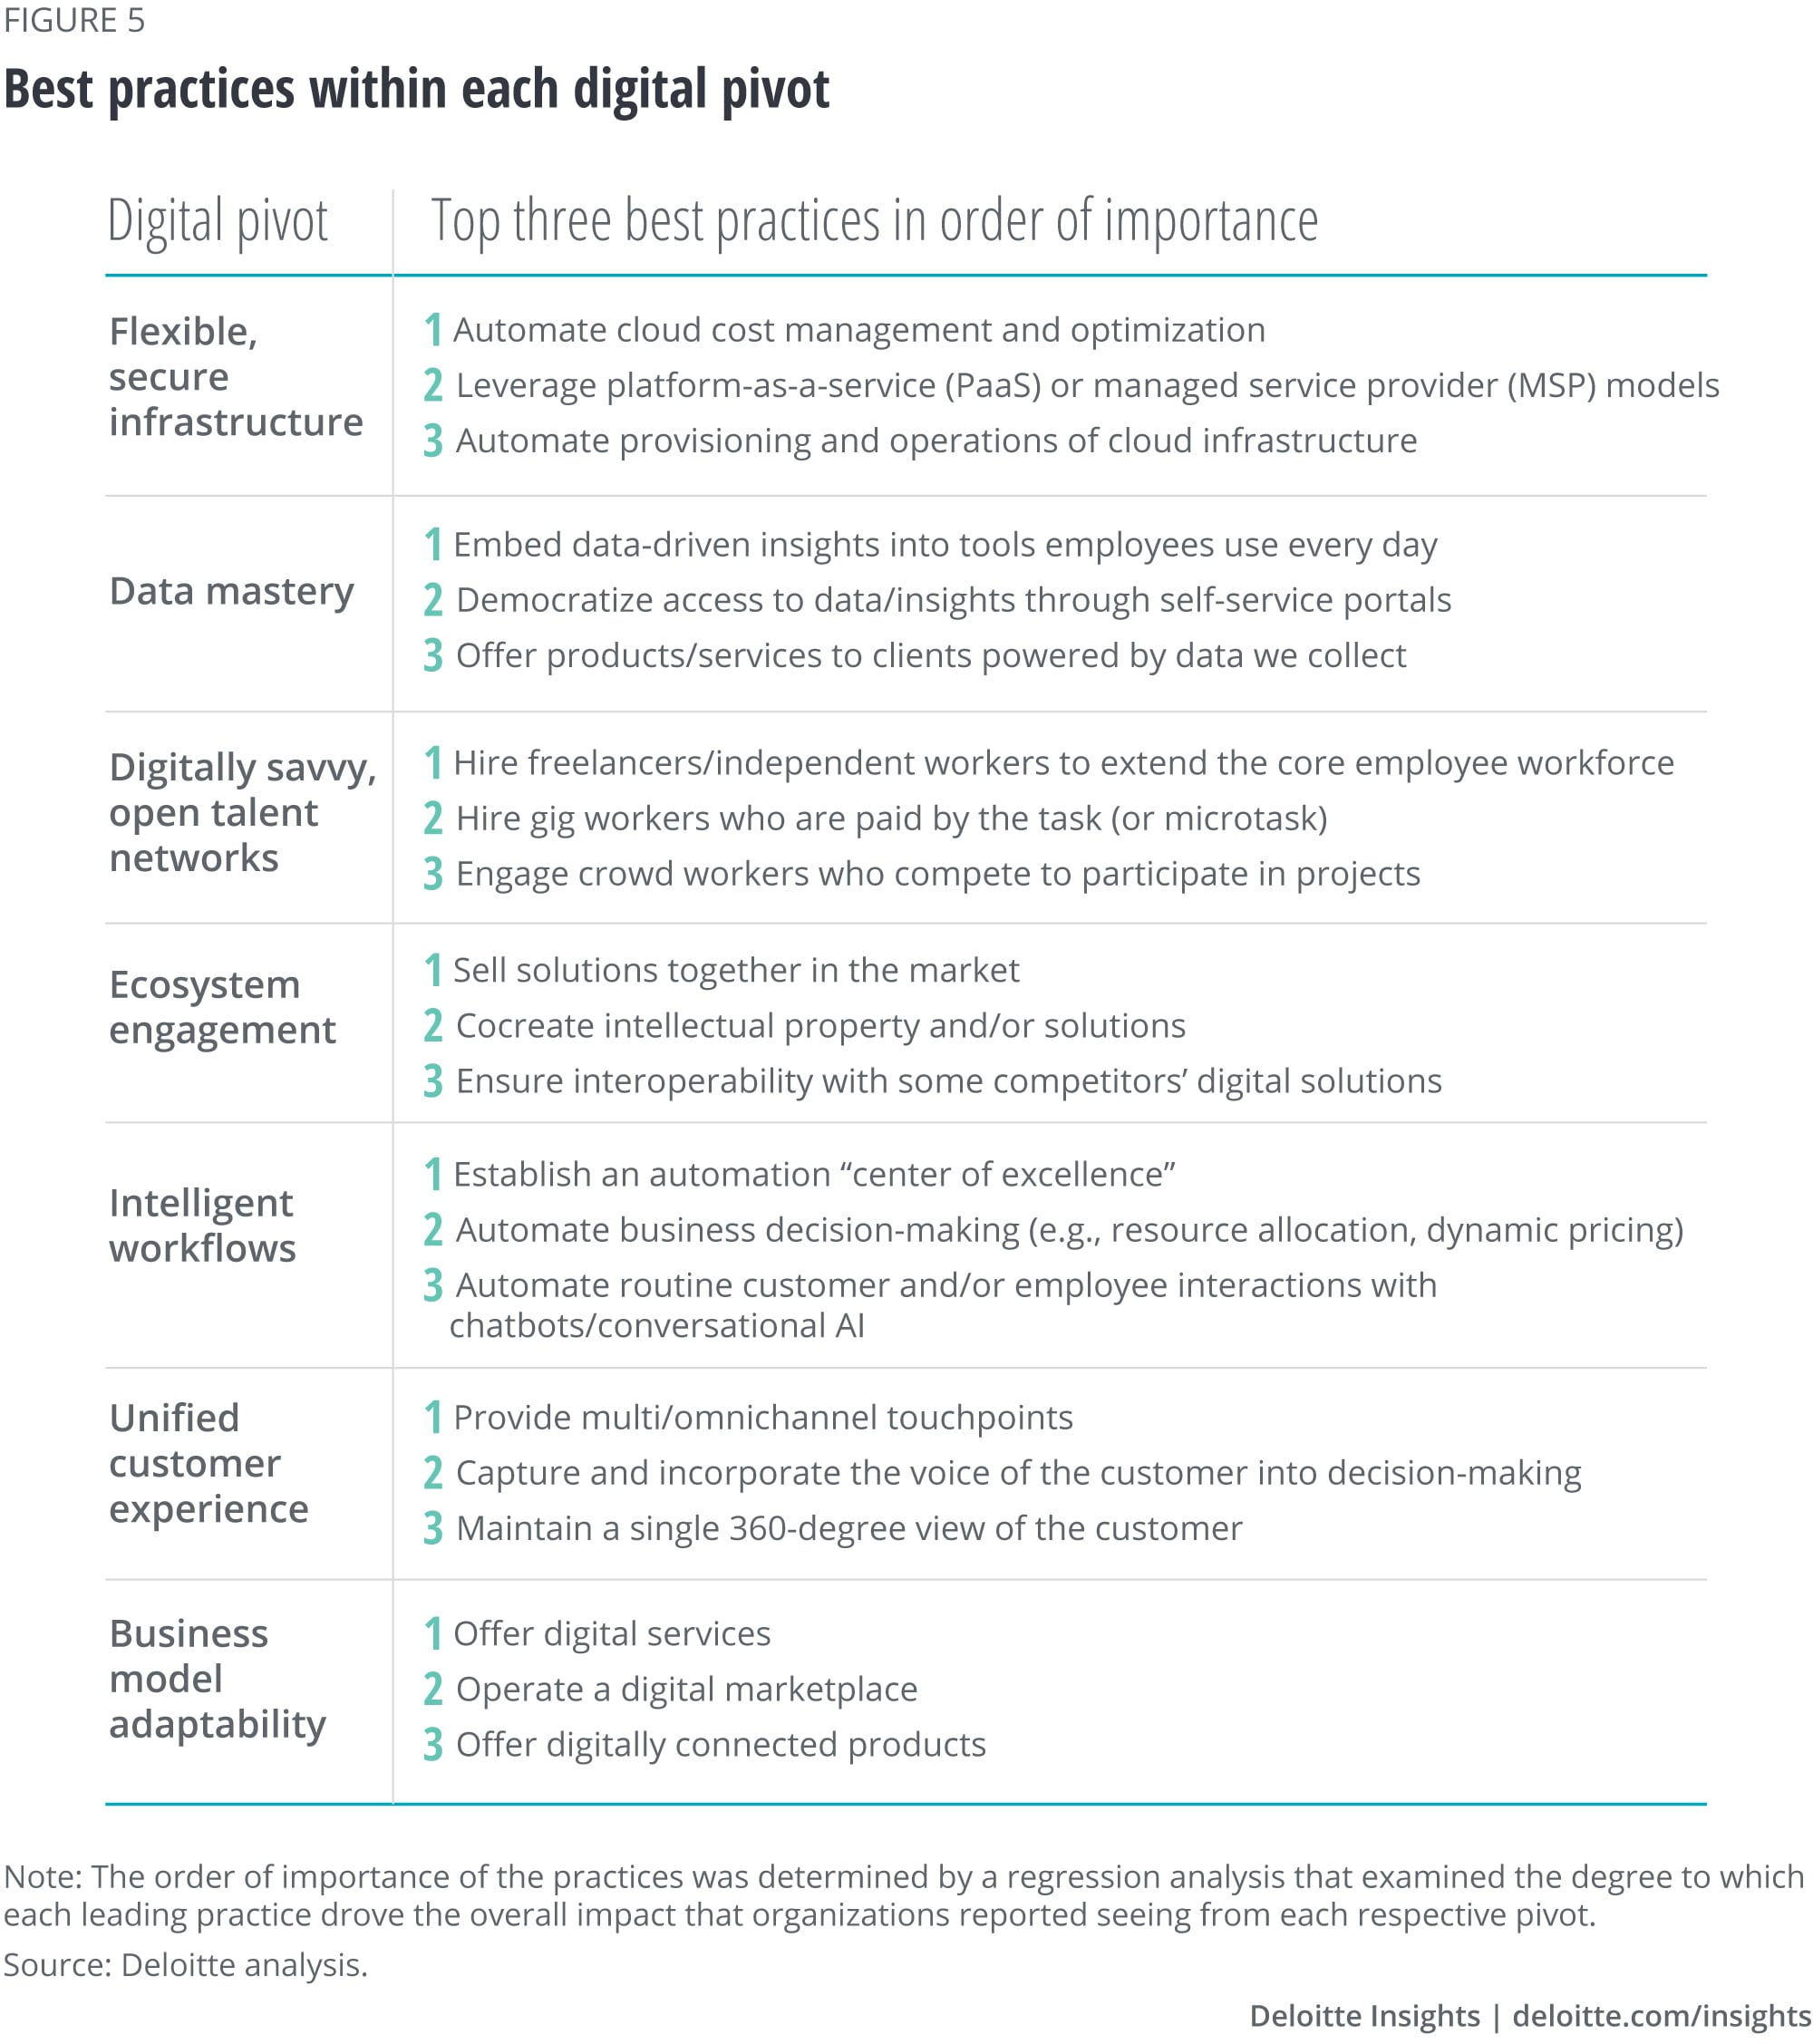 Leading practices within each digital pivot